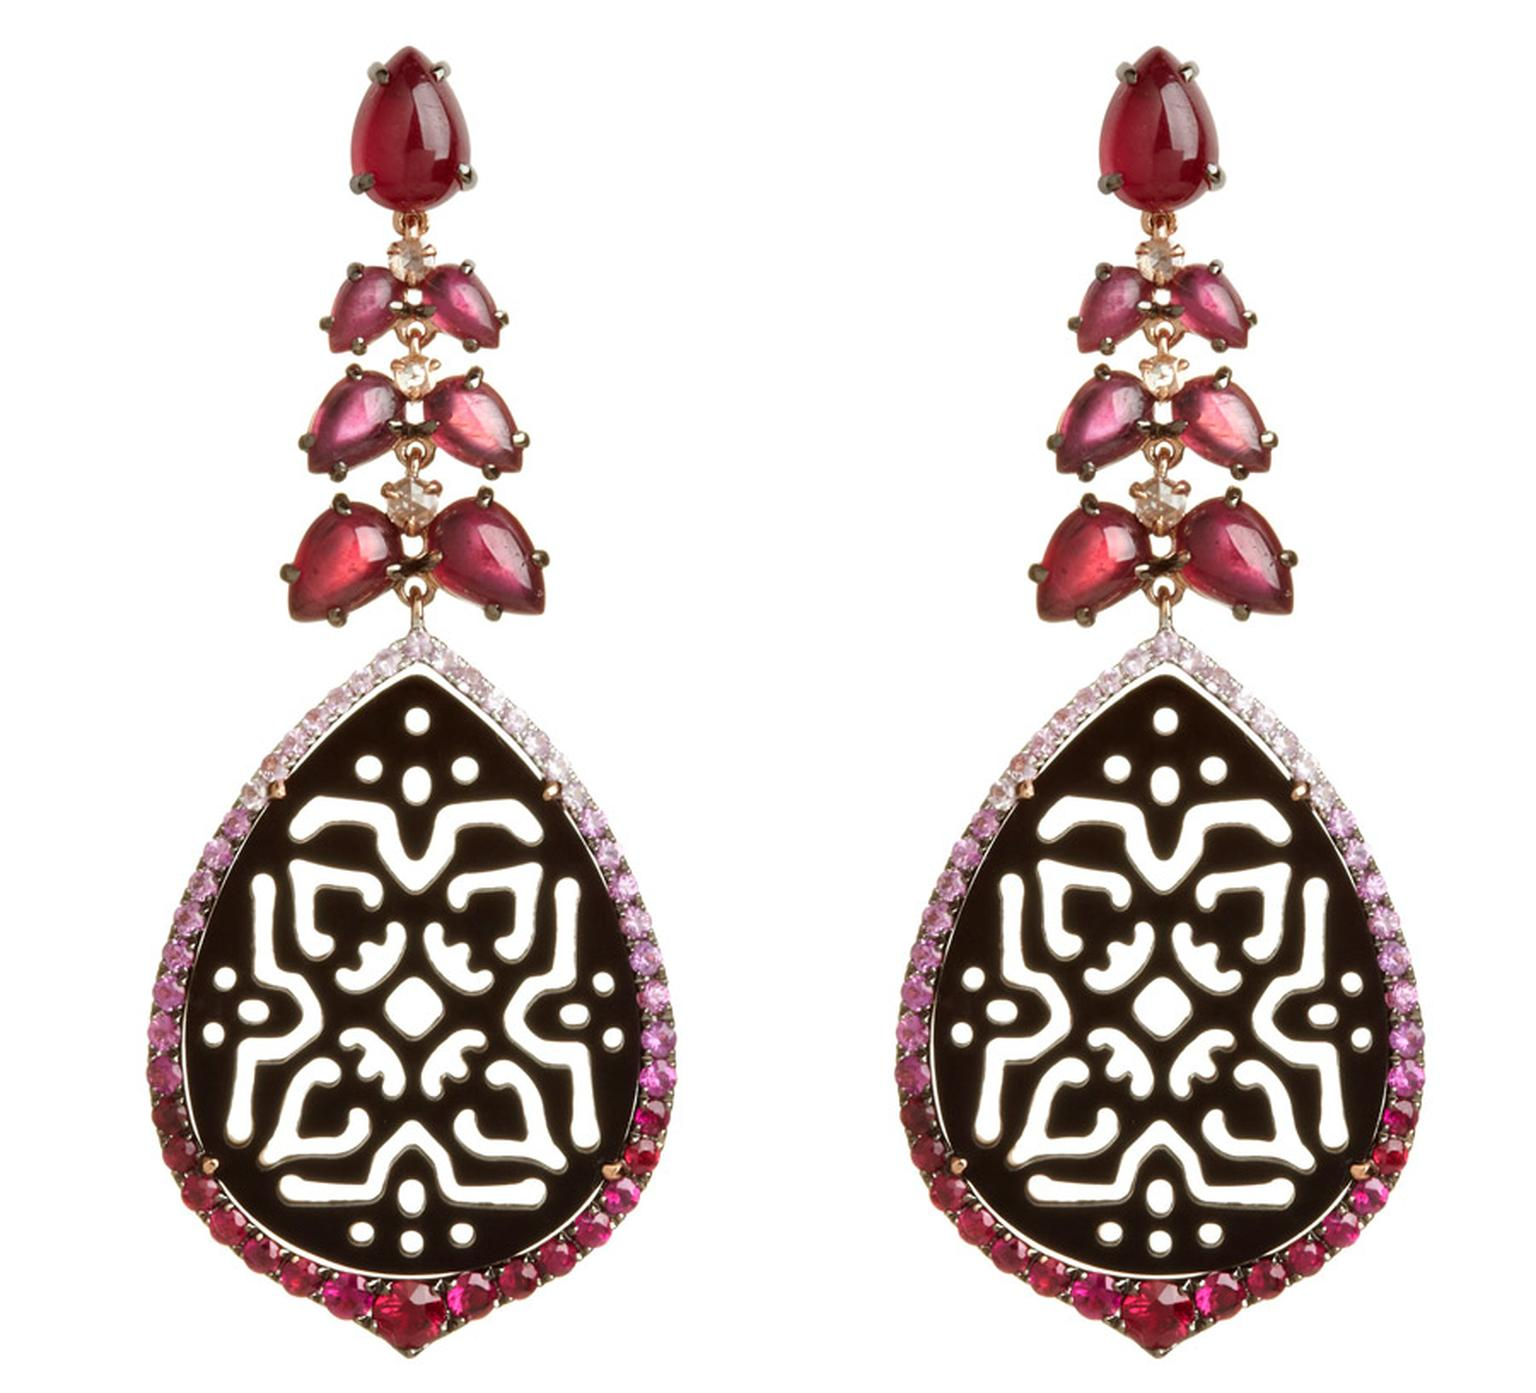 Annoushka-Alhambra-18ct-white-gold-sapphire-diamond-and-ruby-Onyx-earrings.jpg